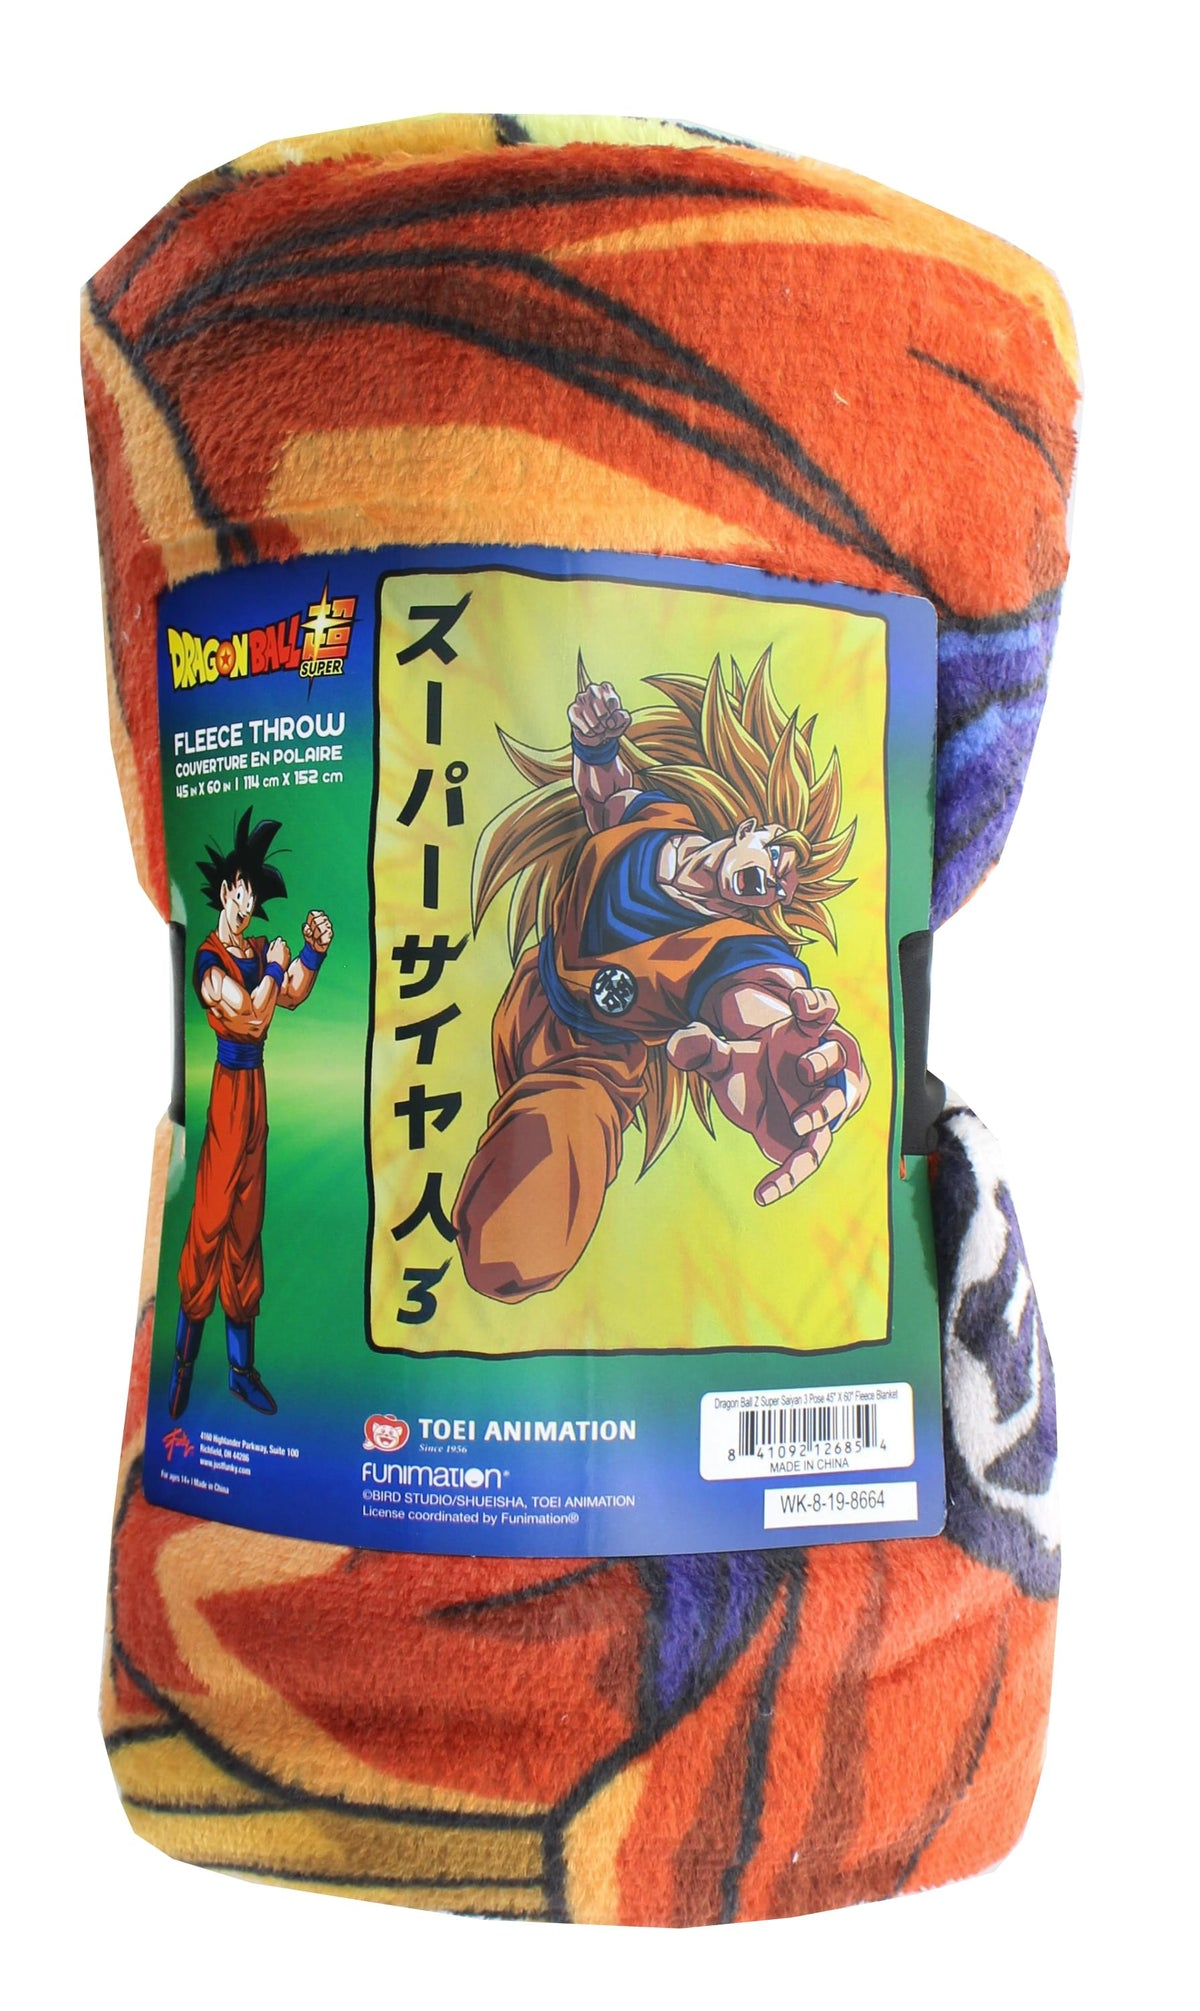 Dragon Ball Z Goku Super Saiyan 3 Japanese Fleece Throw Blanket | 60 x 45 Inches